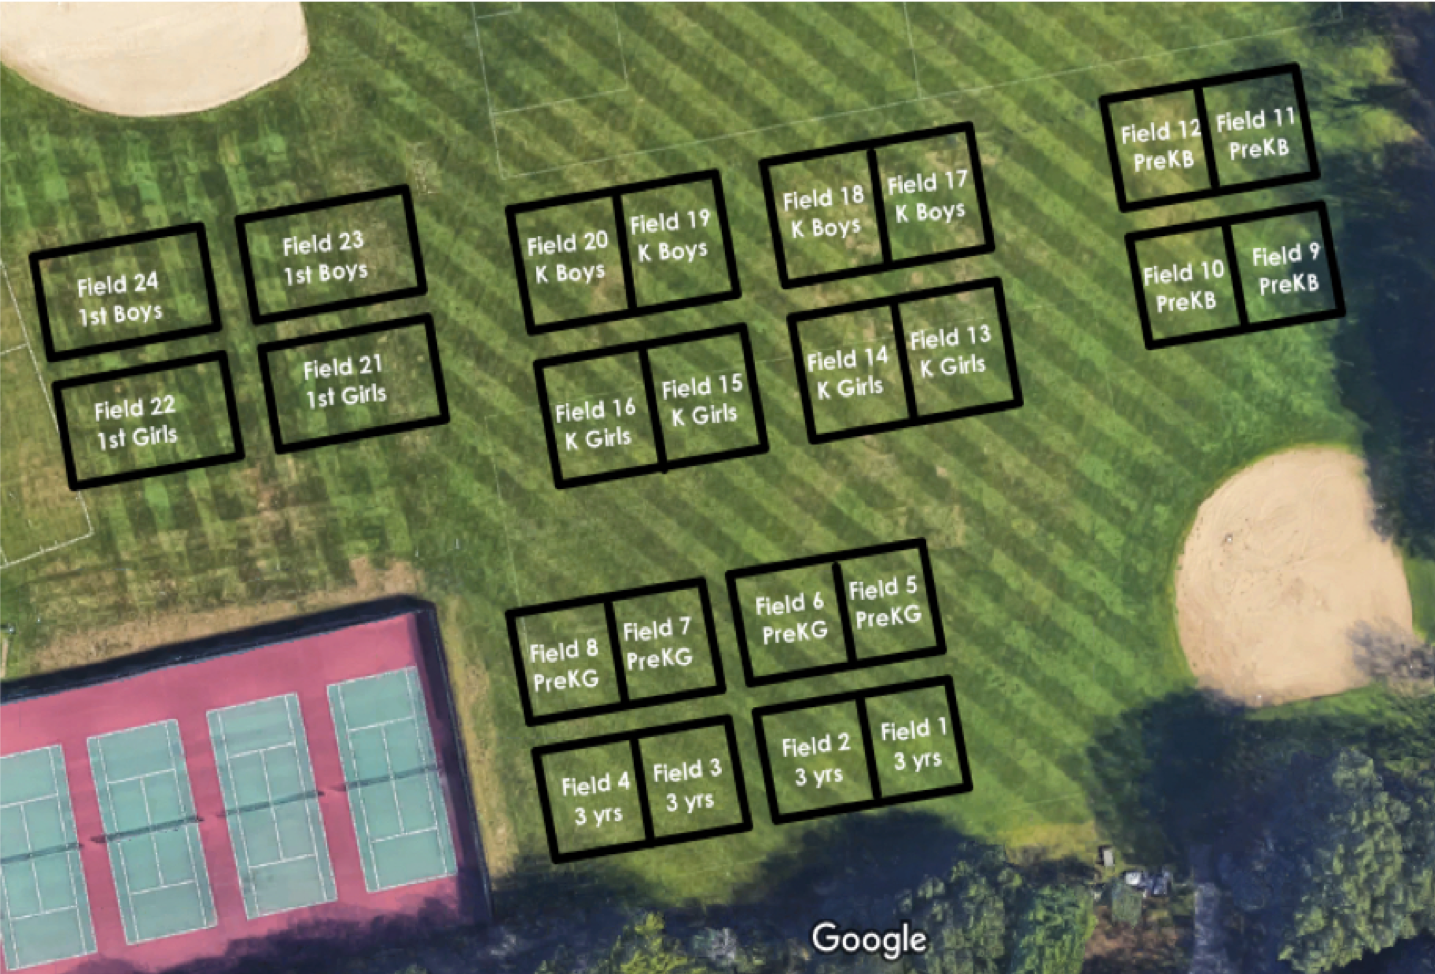 spring 2019 field layout ds high school Sunday